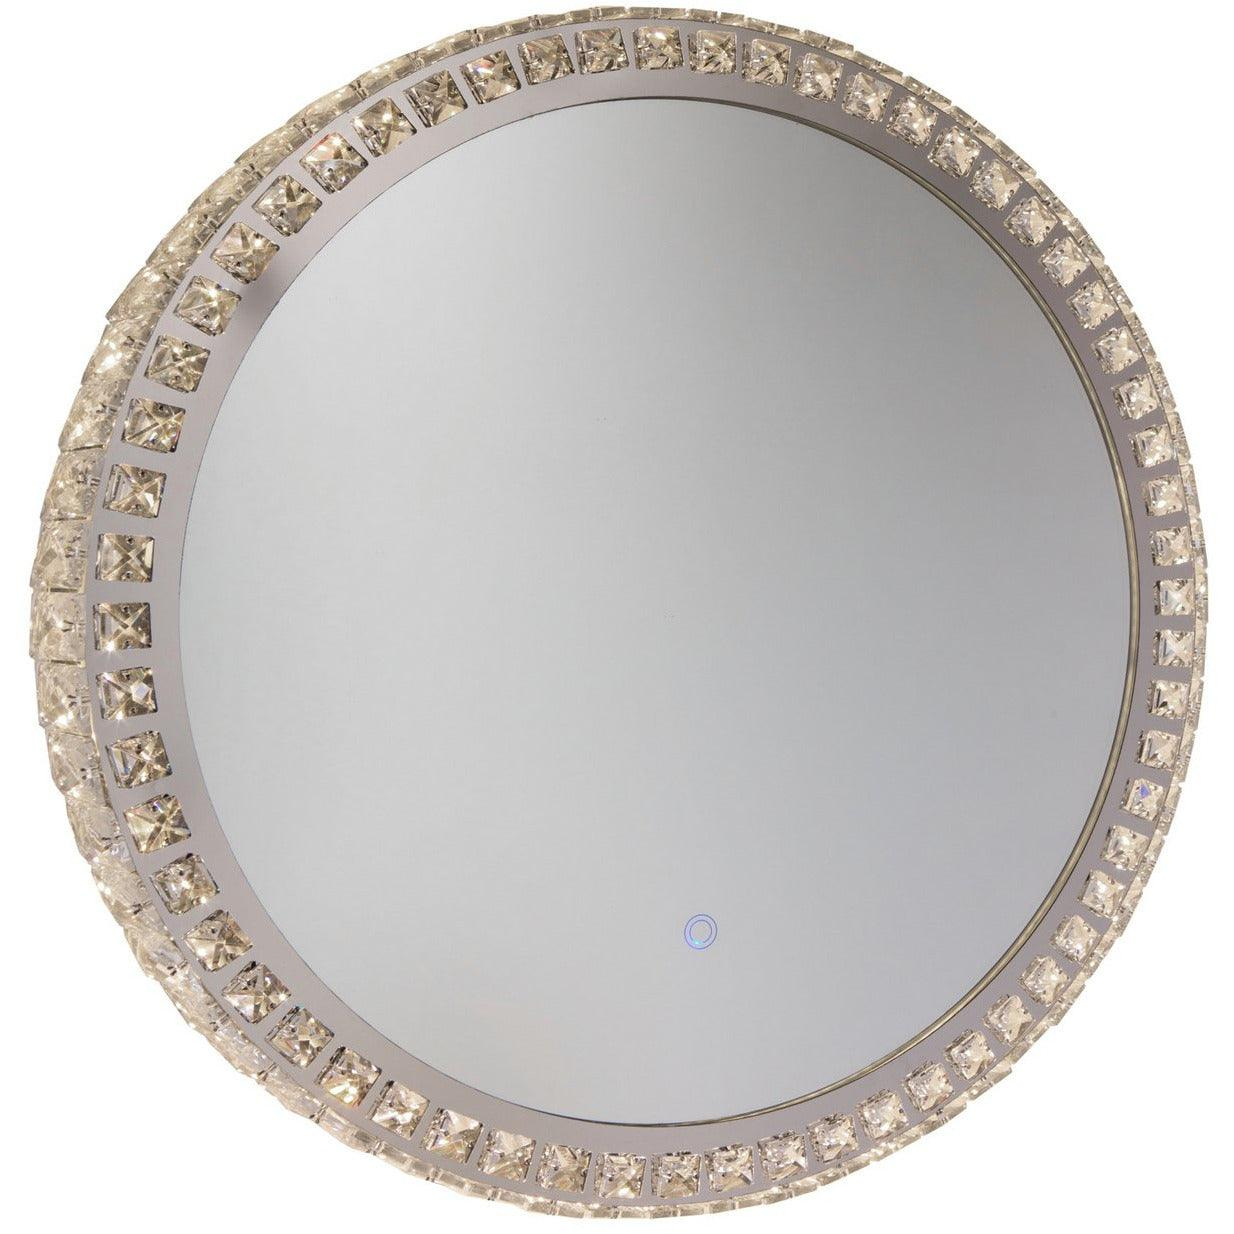 Artcraft Lighting - AM302 - LED Mirror - Reflections - Metal & Glass